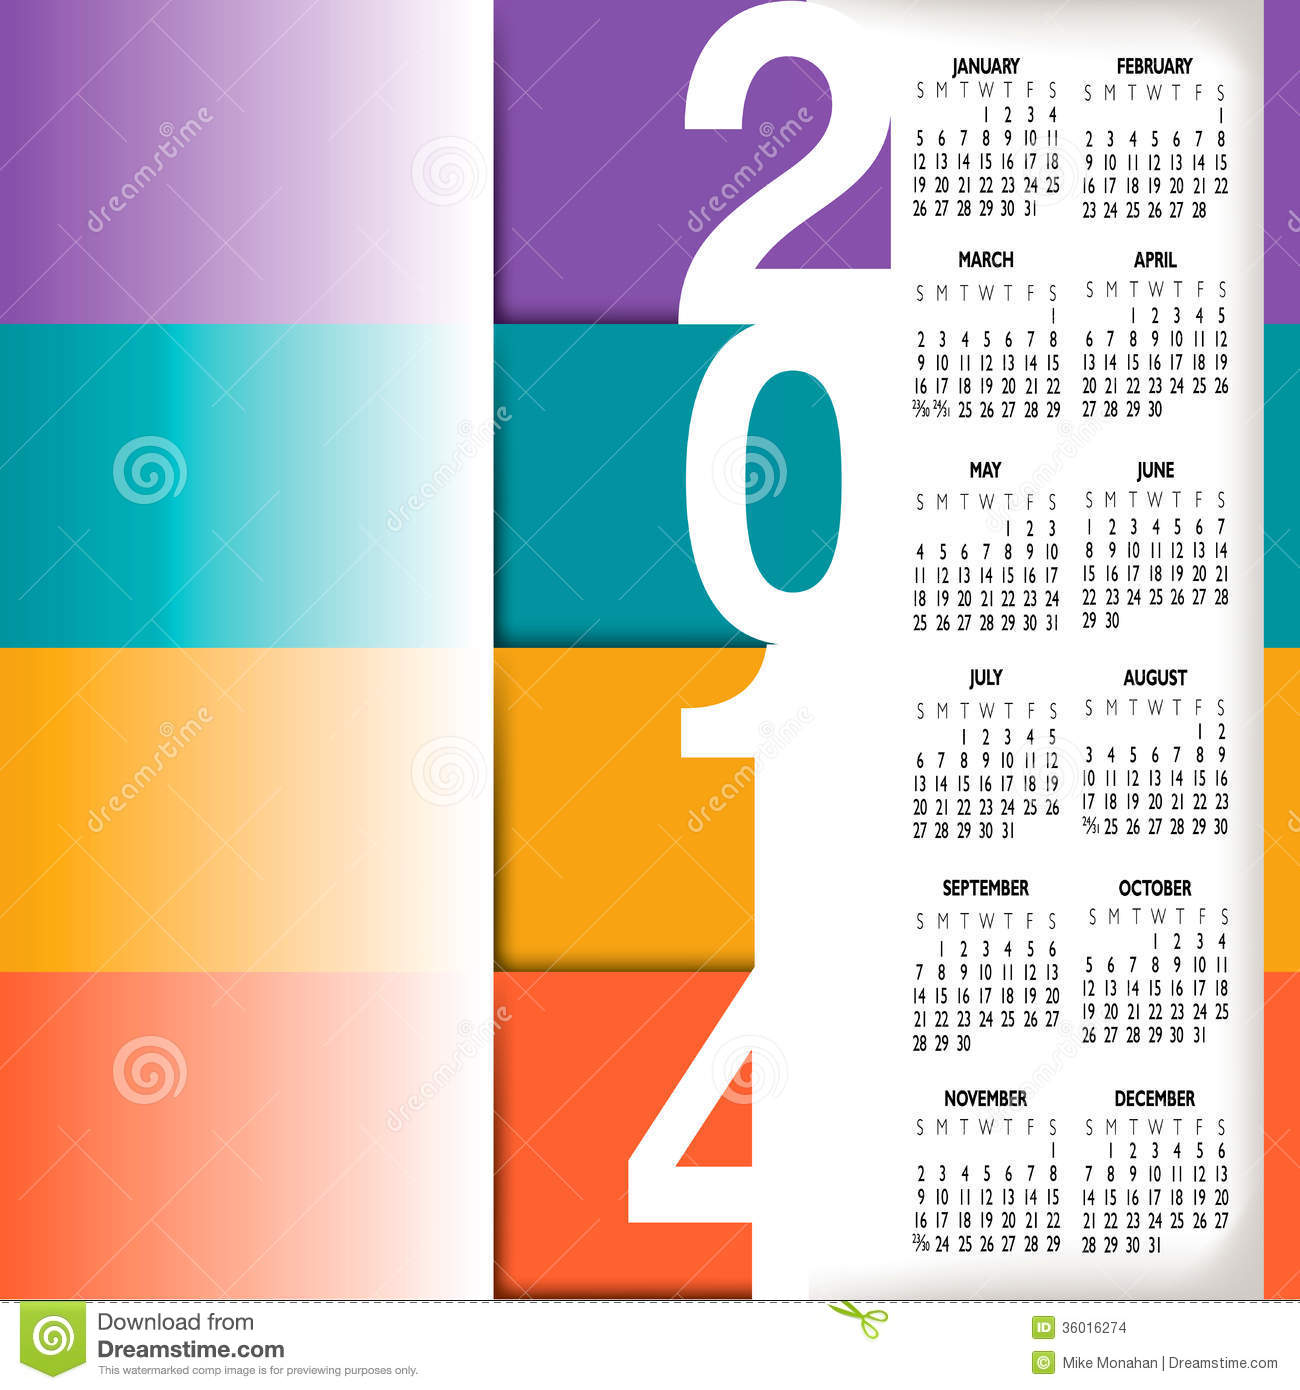 2014 Infographic Style Calendar Stock Images - Image: 36016274